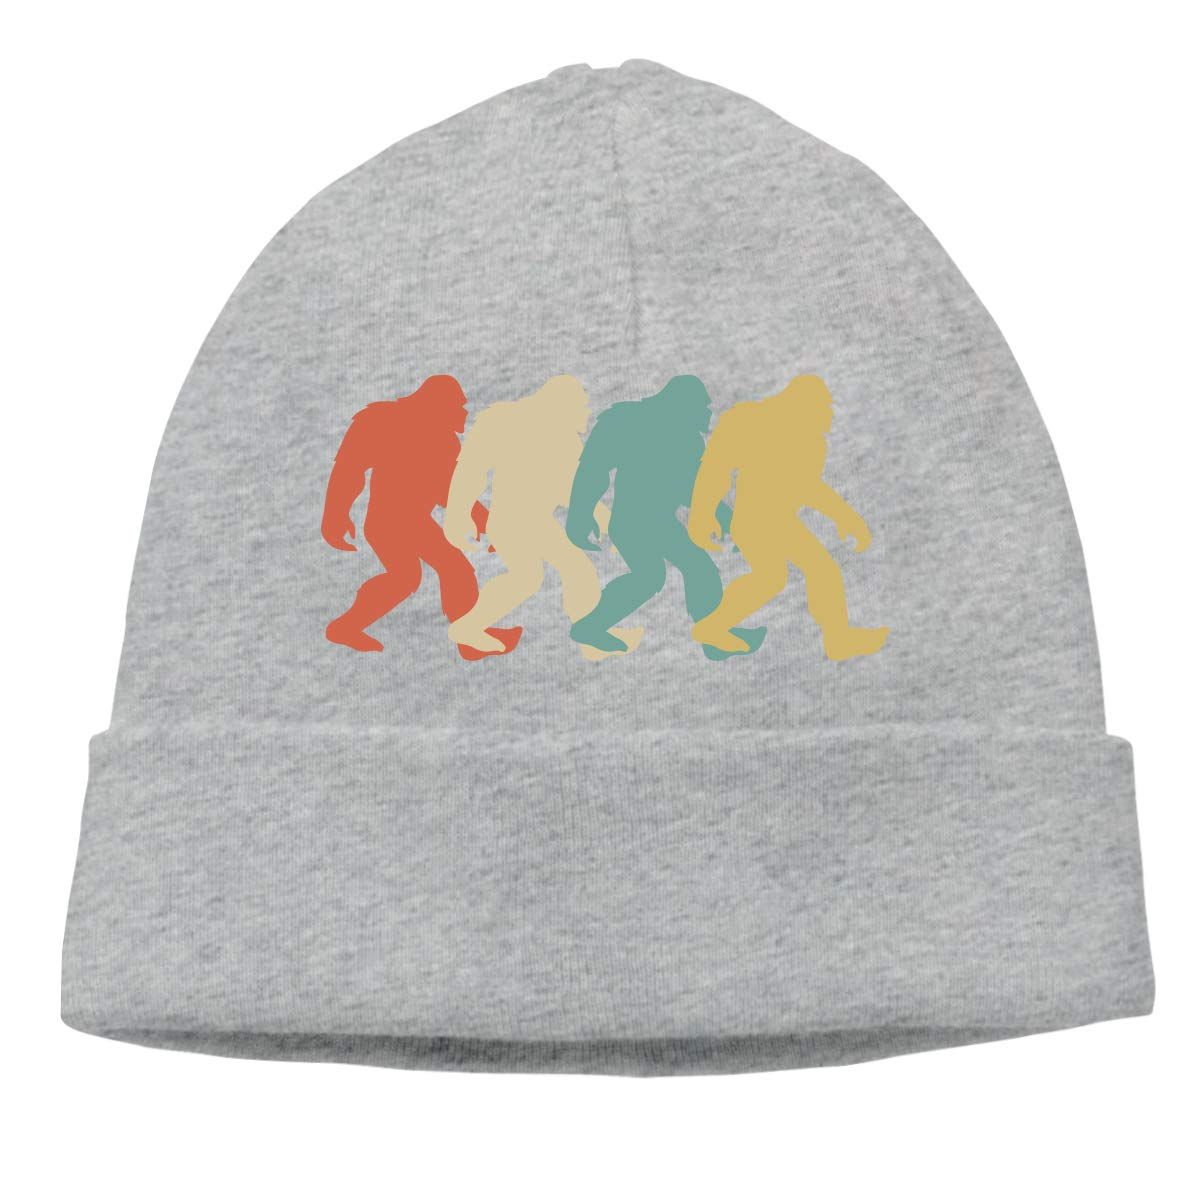 Beanie Hat Retro Bigfoot Sasquatch Warm Skull Caps Men Women